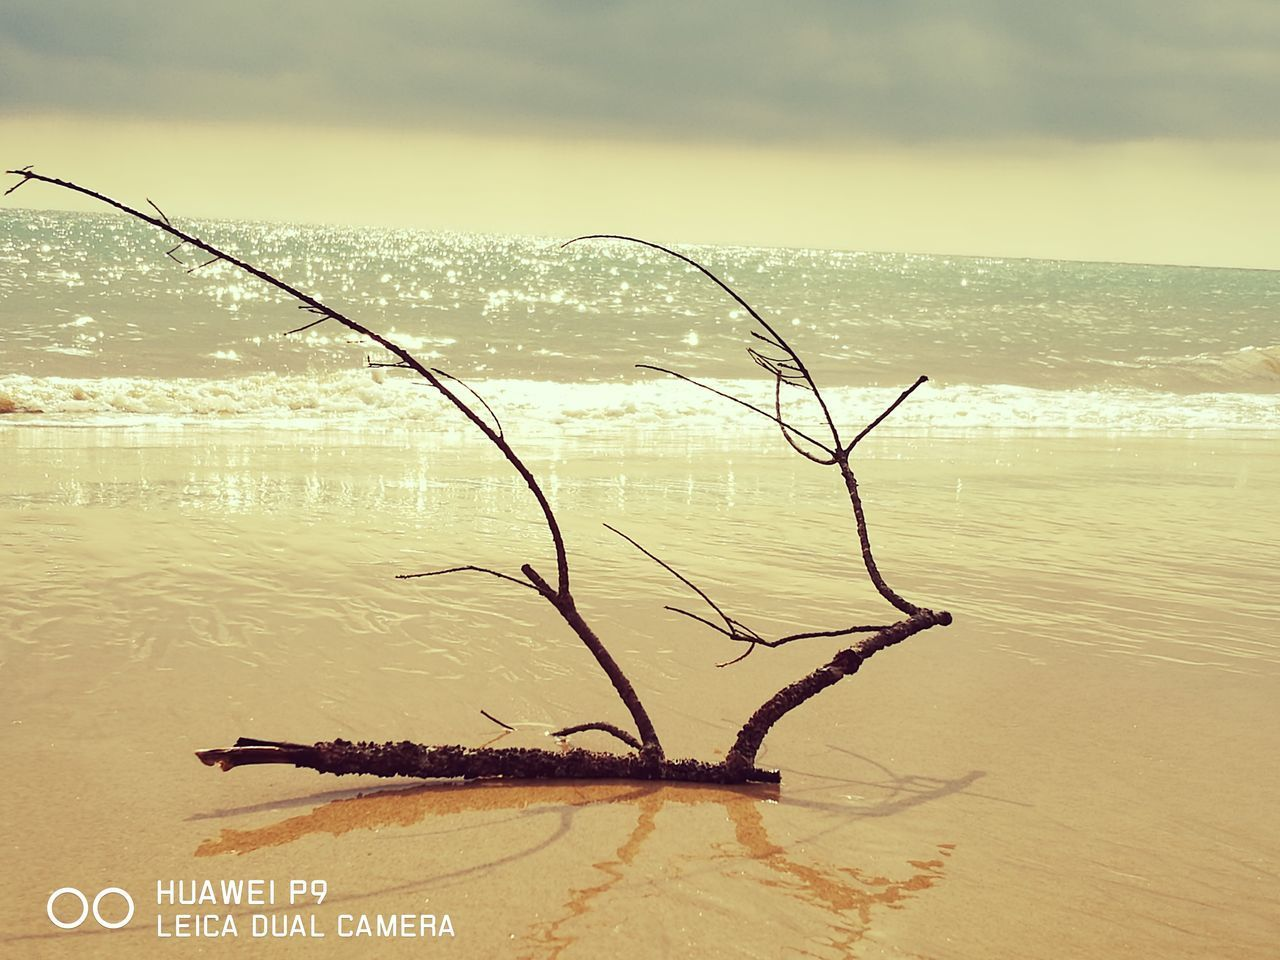 water, nature, sea, scenics, beauty in nature, horizon over water, outdoors, tranquility, sky, tranquil scene, no people, silhouette, sunset, beach, day, dead tree